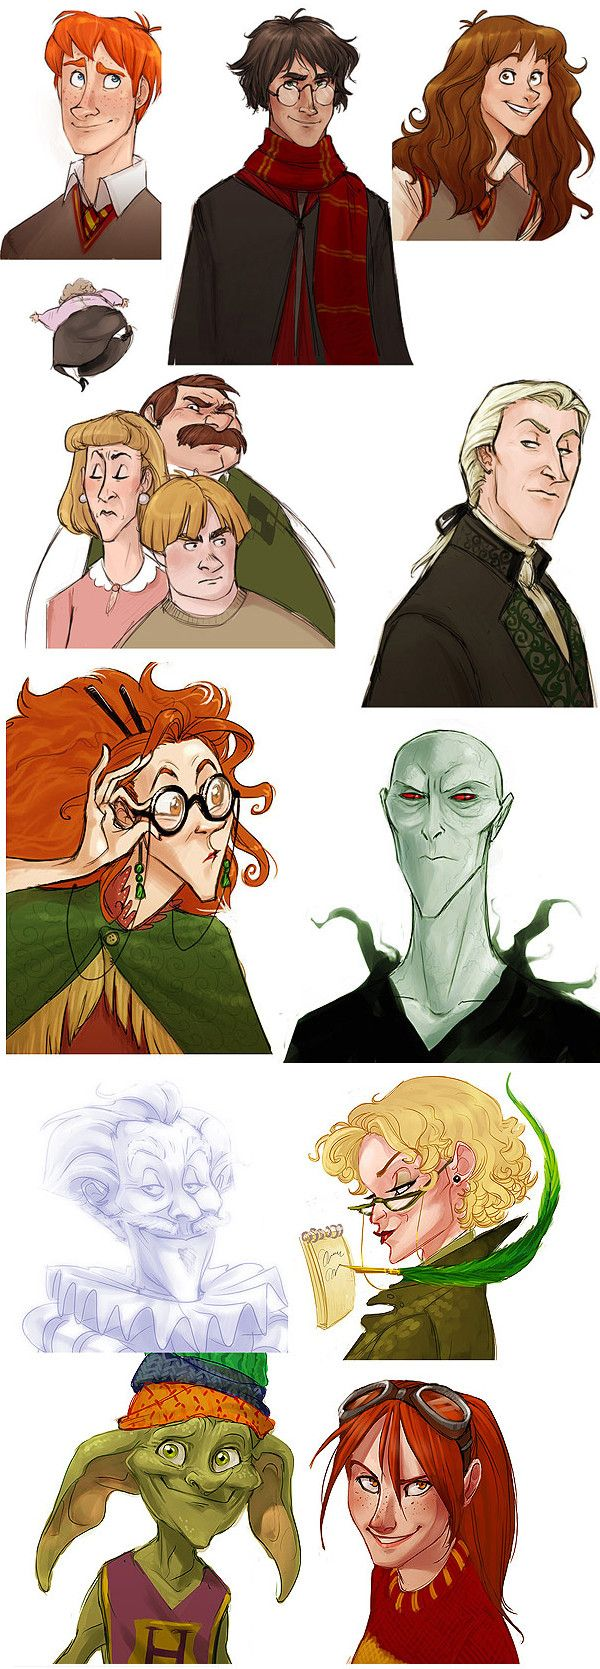 Harry Potter characters in Disney style (Part 1)